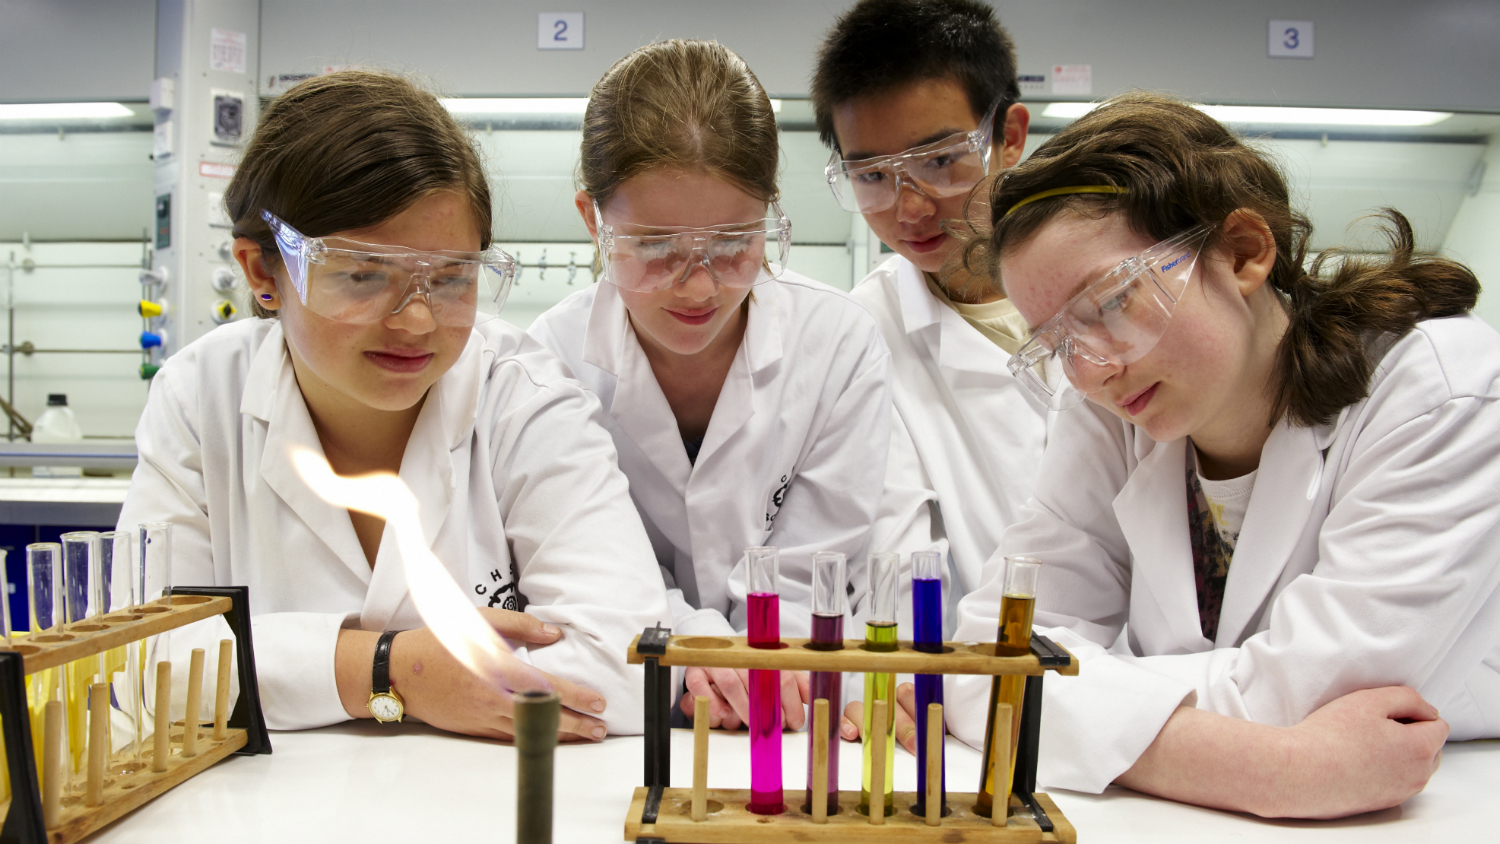 Four school children look at test tubes and a bunsen burner